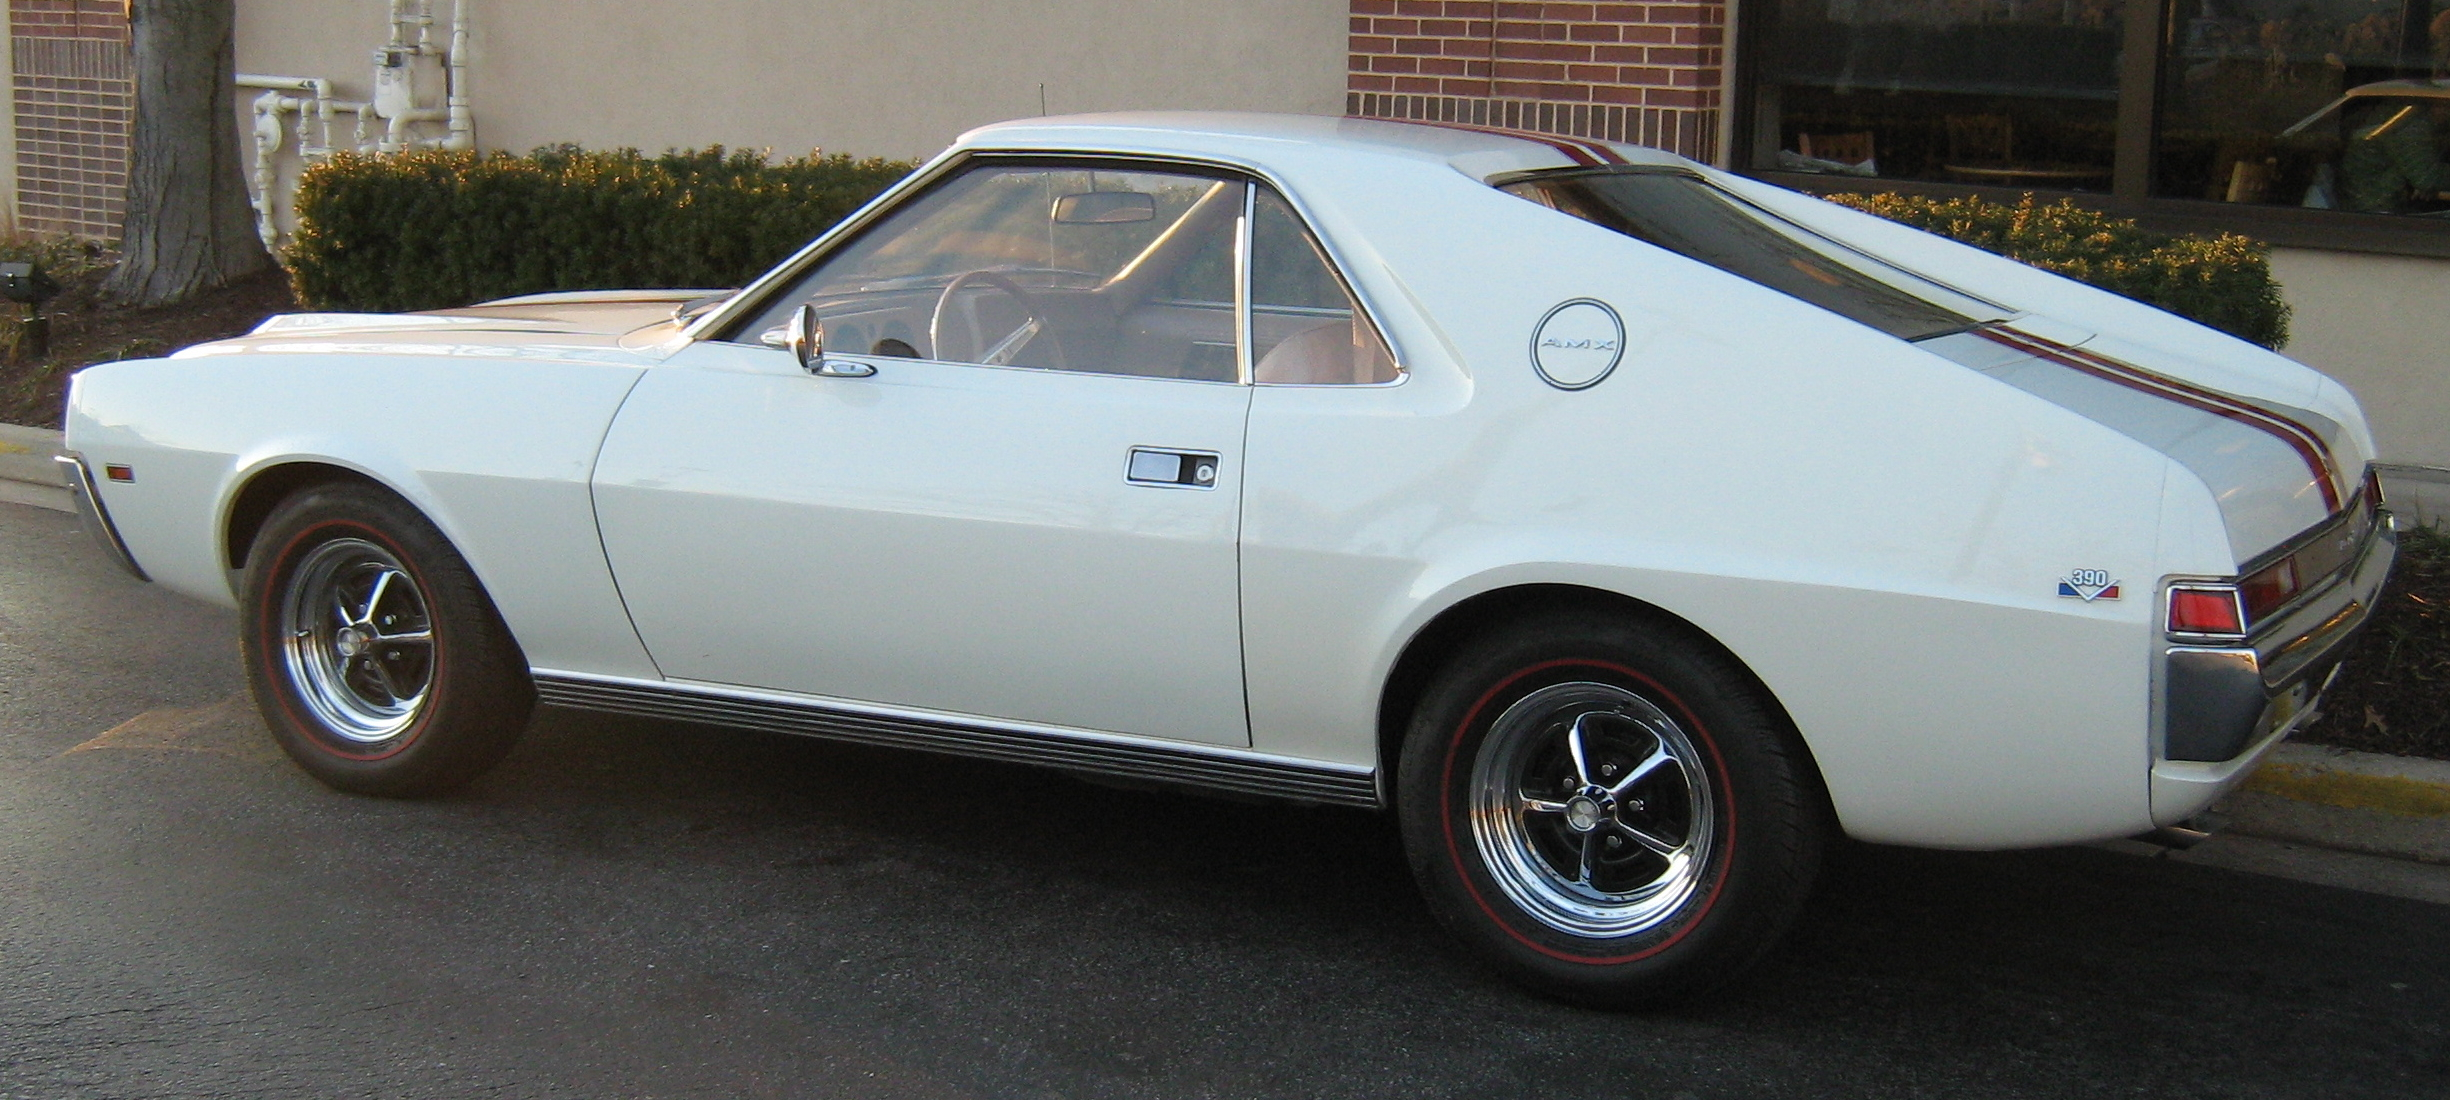 Amc amx photo - 1